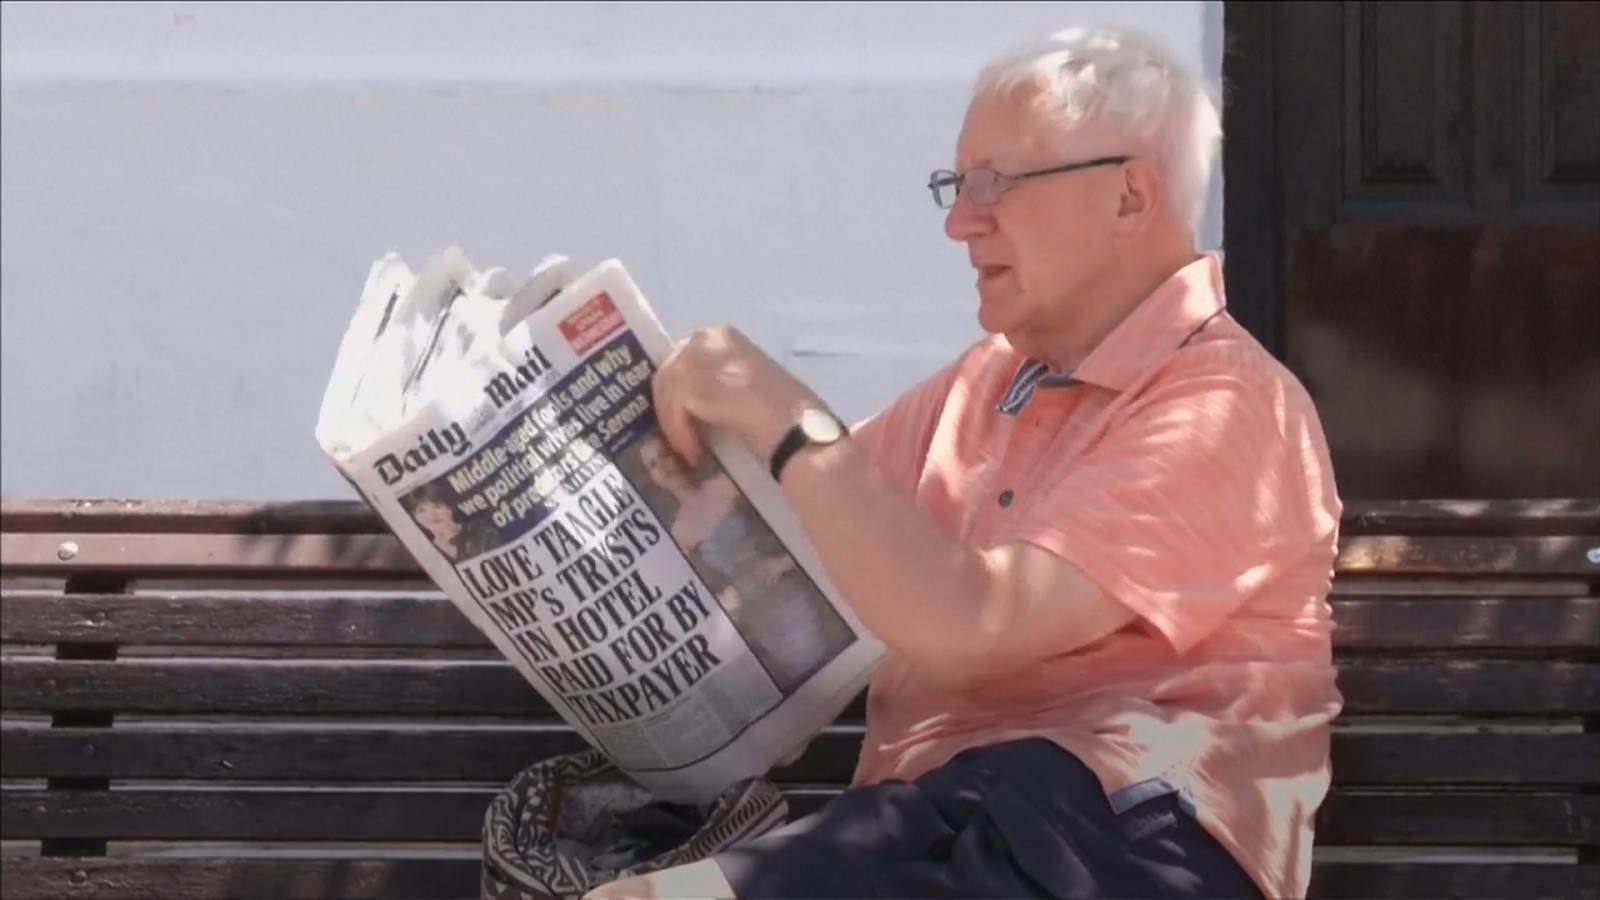 Man with Daily Mail